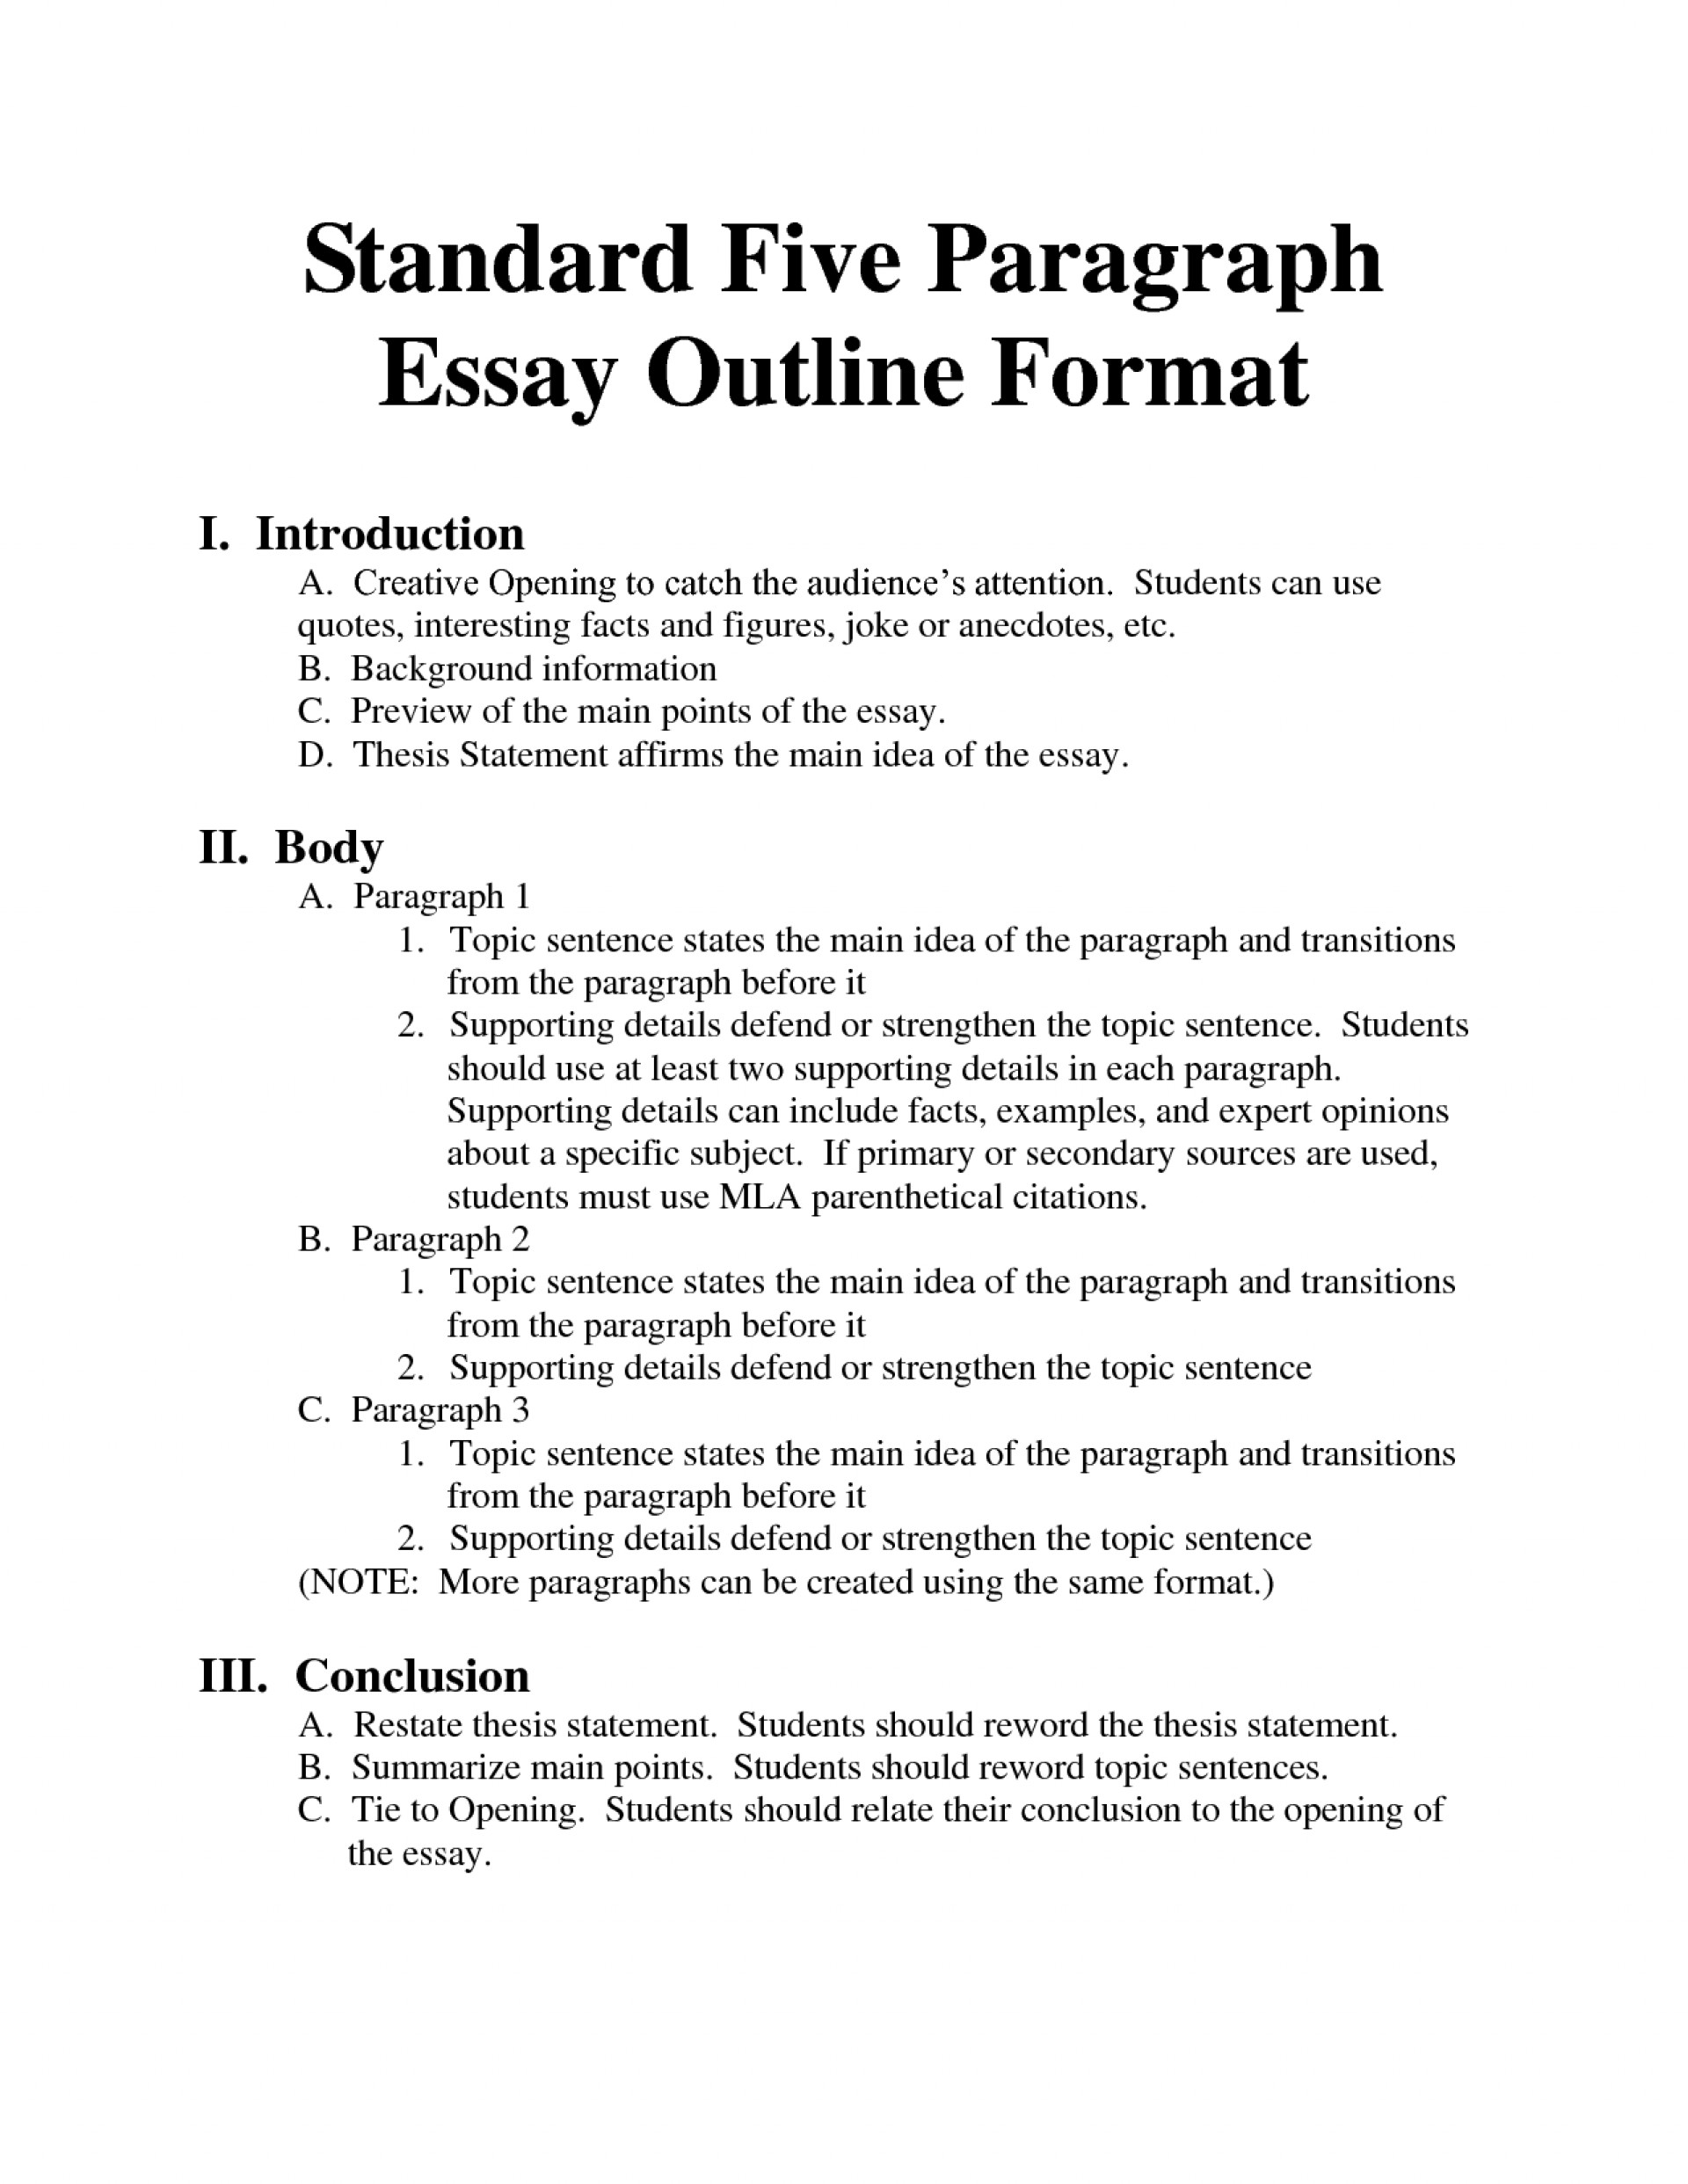 007 Proper Format For Research Paper Outline Incredible A 1920